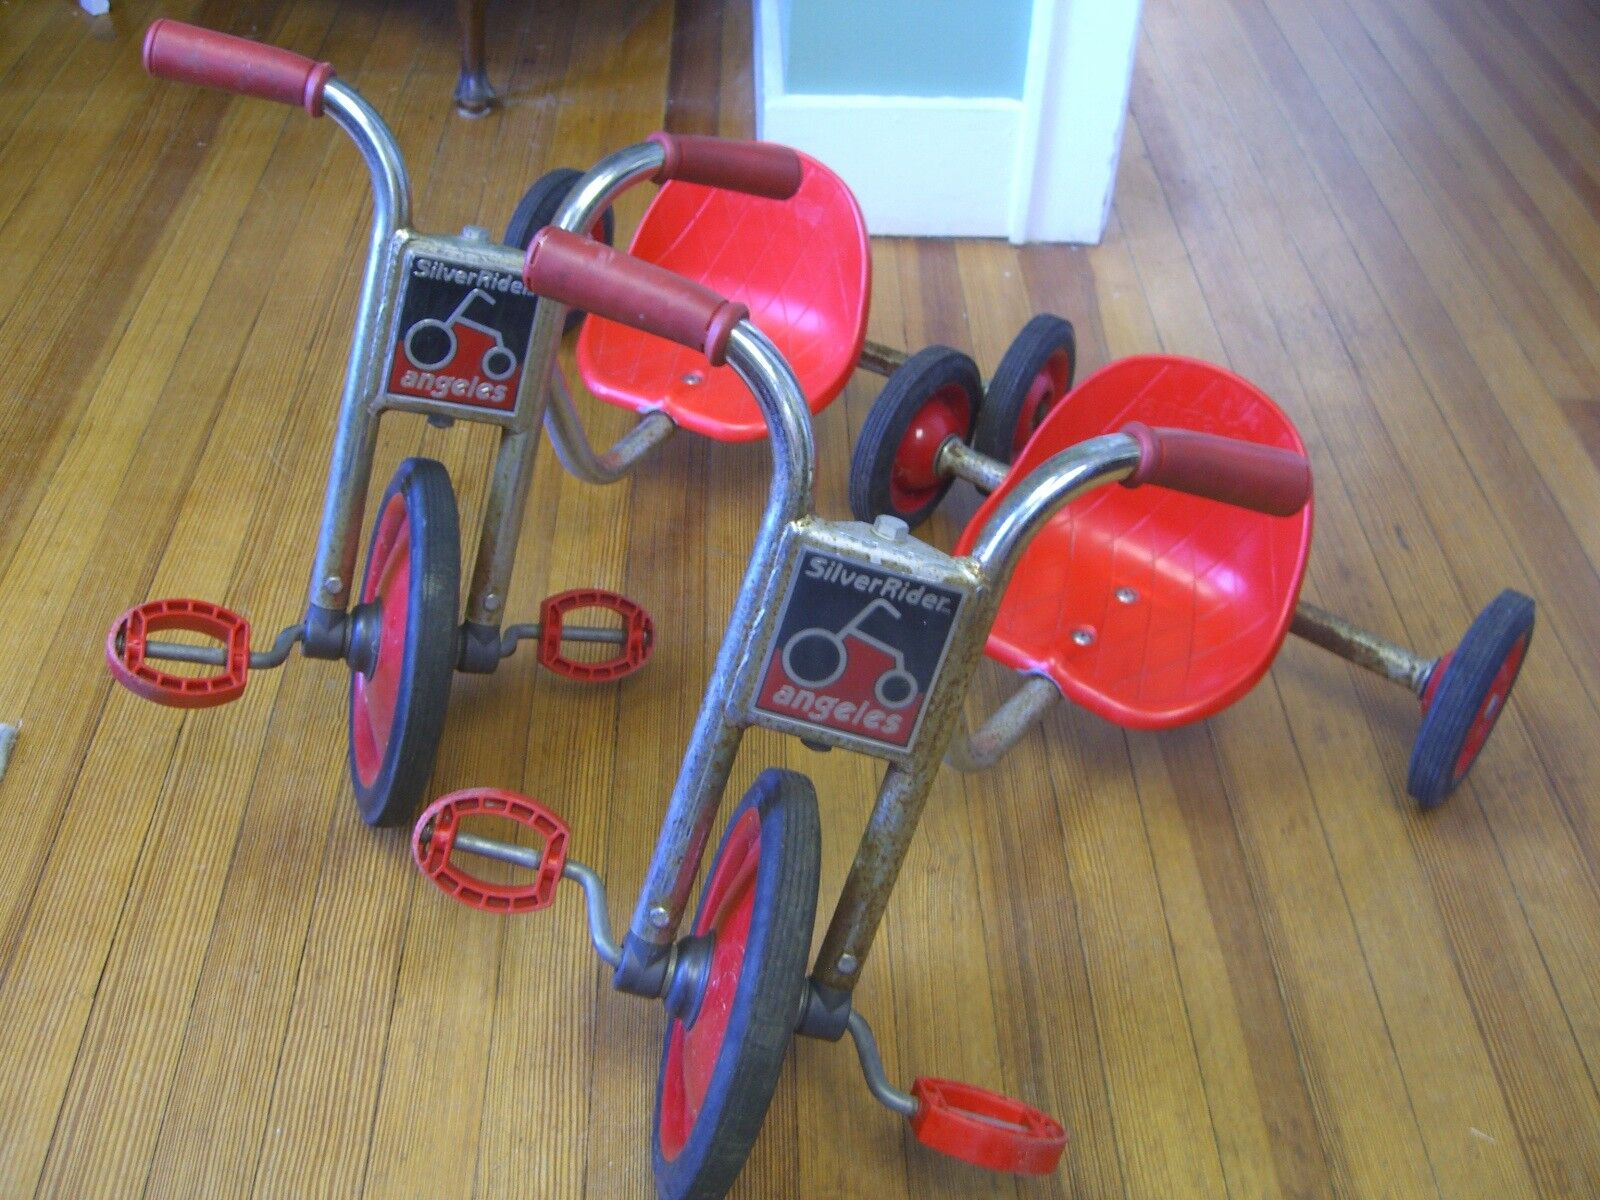 Vintage Plata Rider Angeles Triciclo ( We Have (2) Venta por Separado)